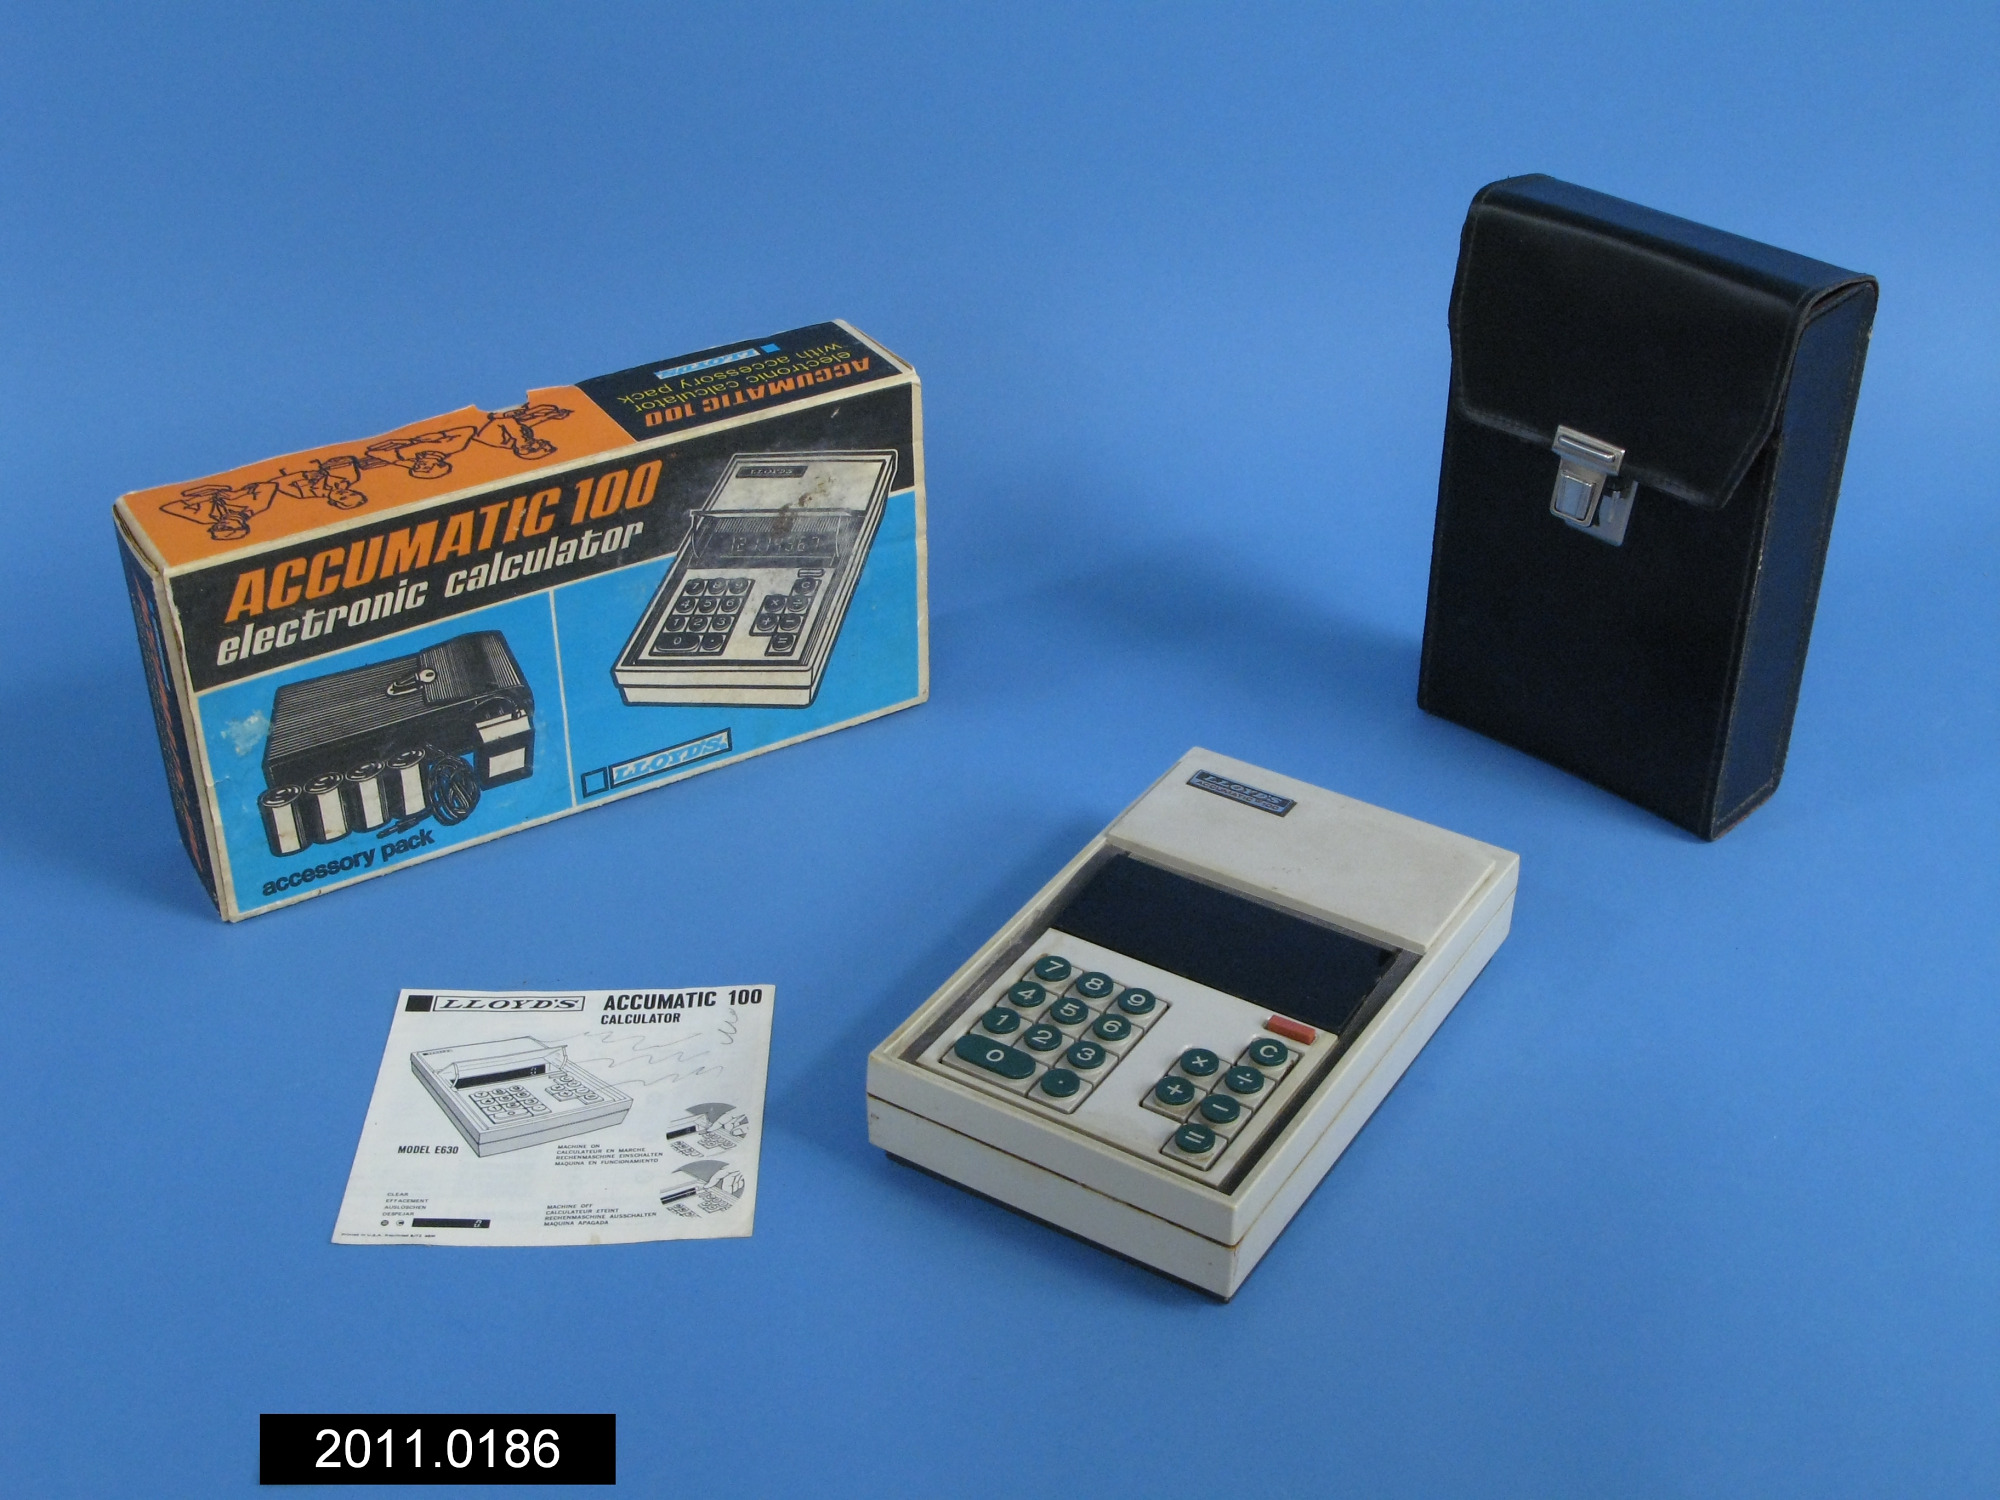 Accumatic 100 Electronic Calculator